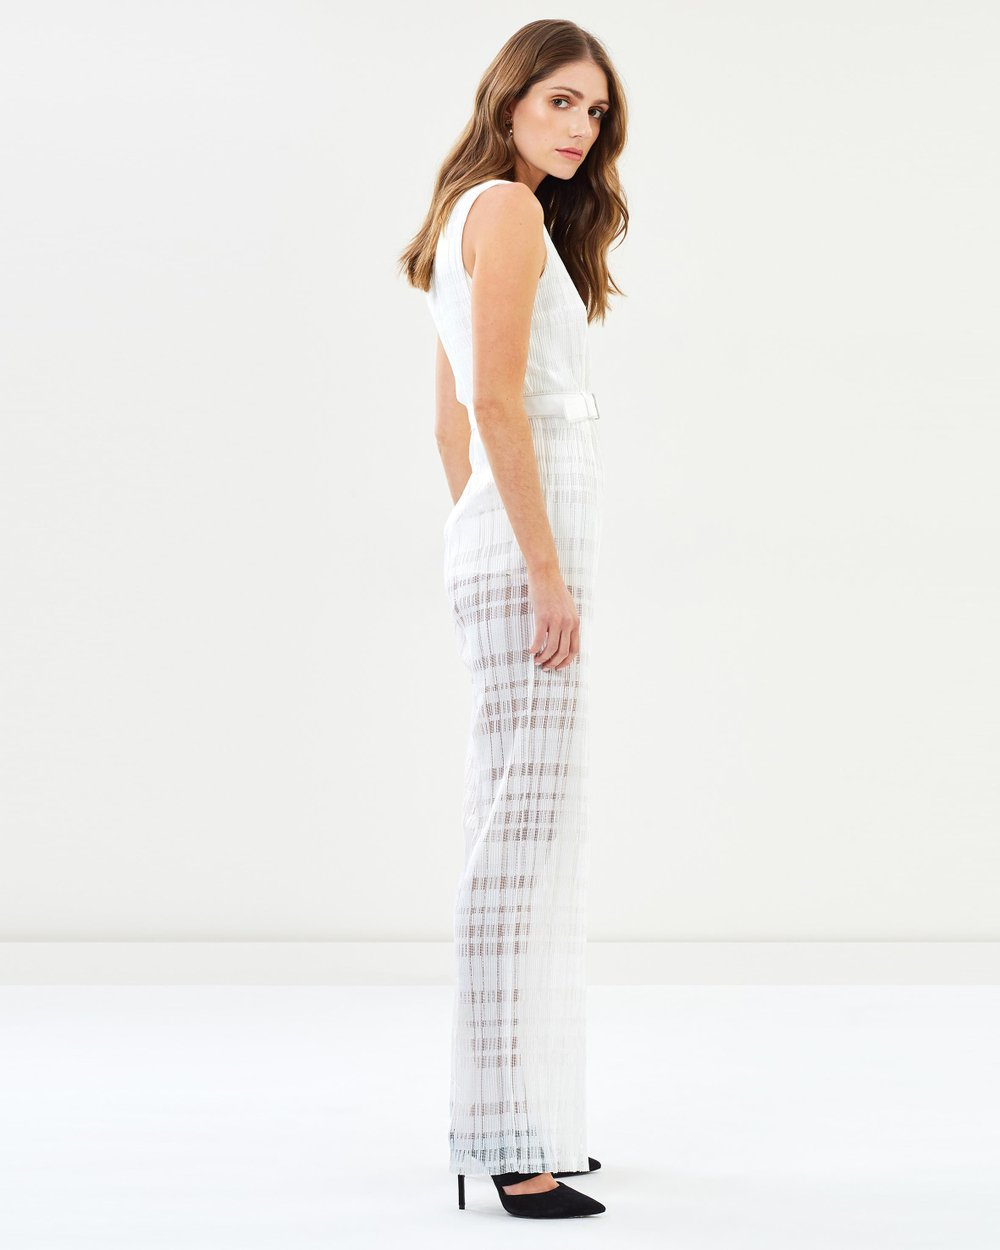 a7a68256bf4 Lani Pantsuit by Misha Collection Online